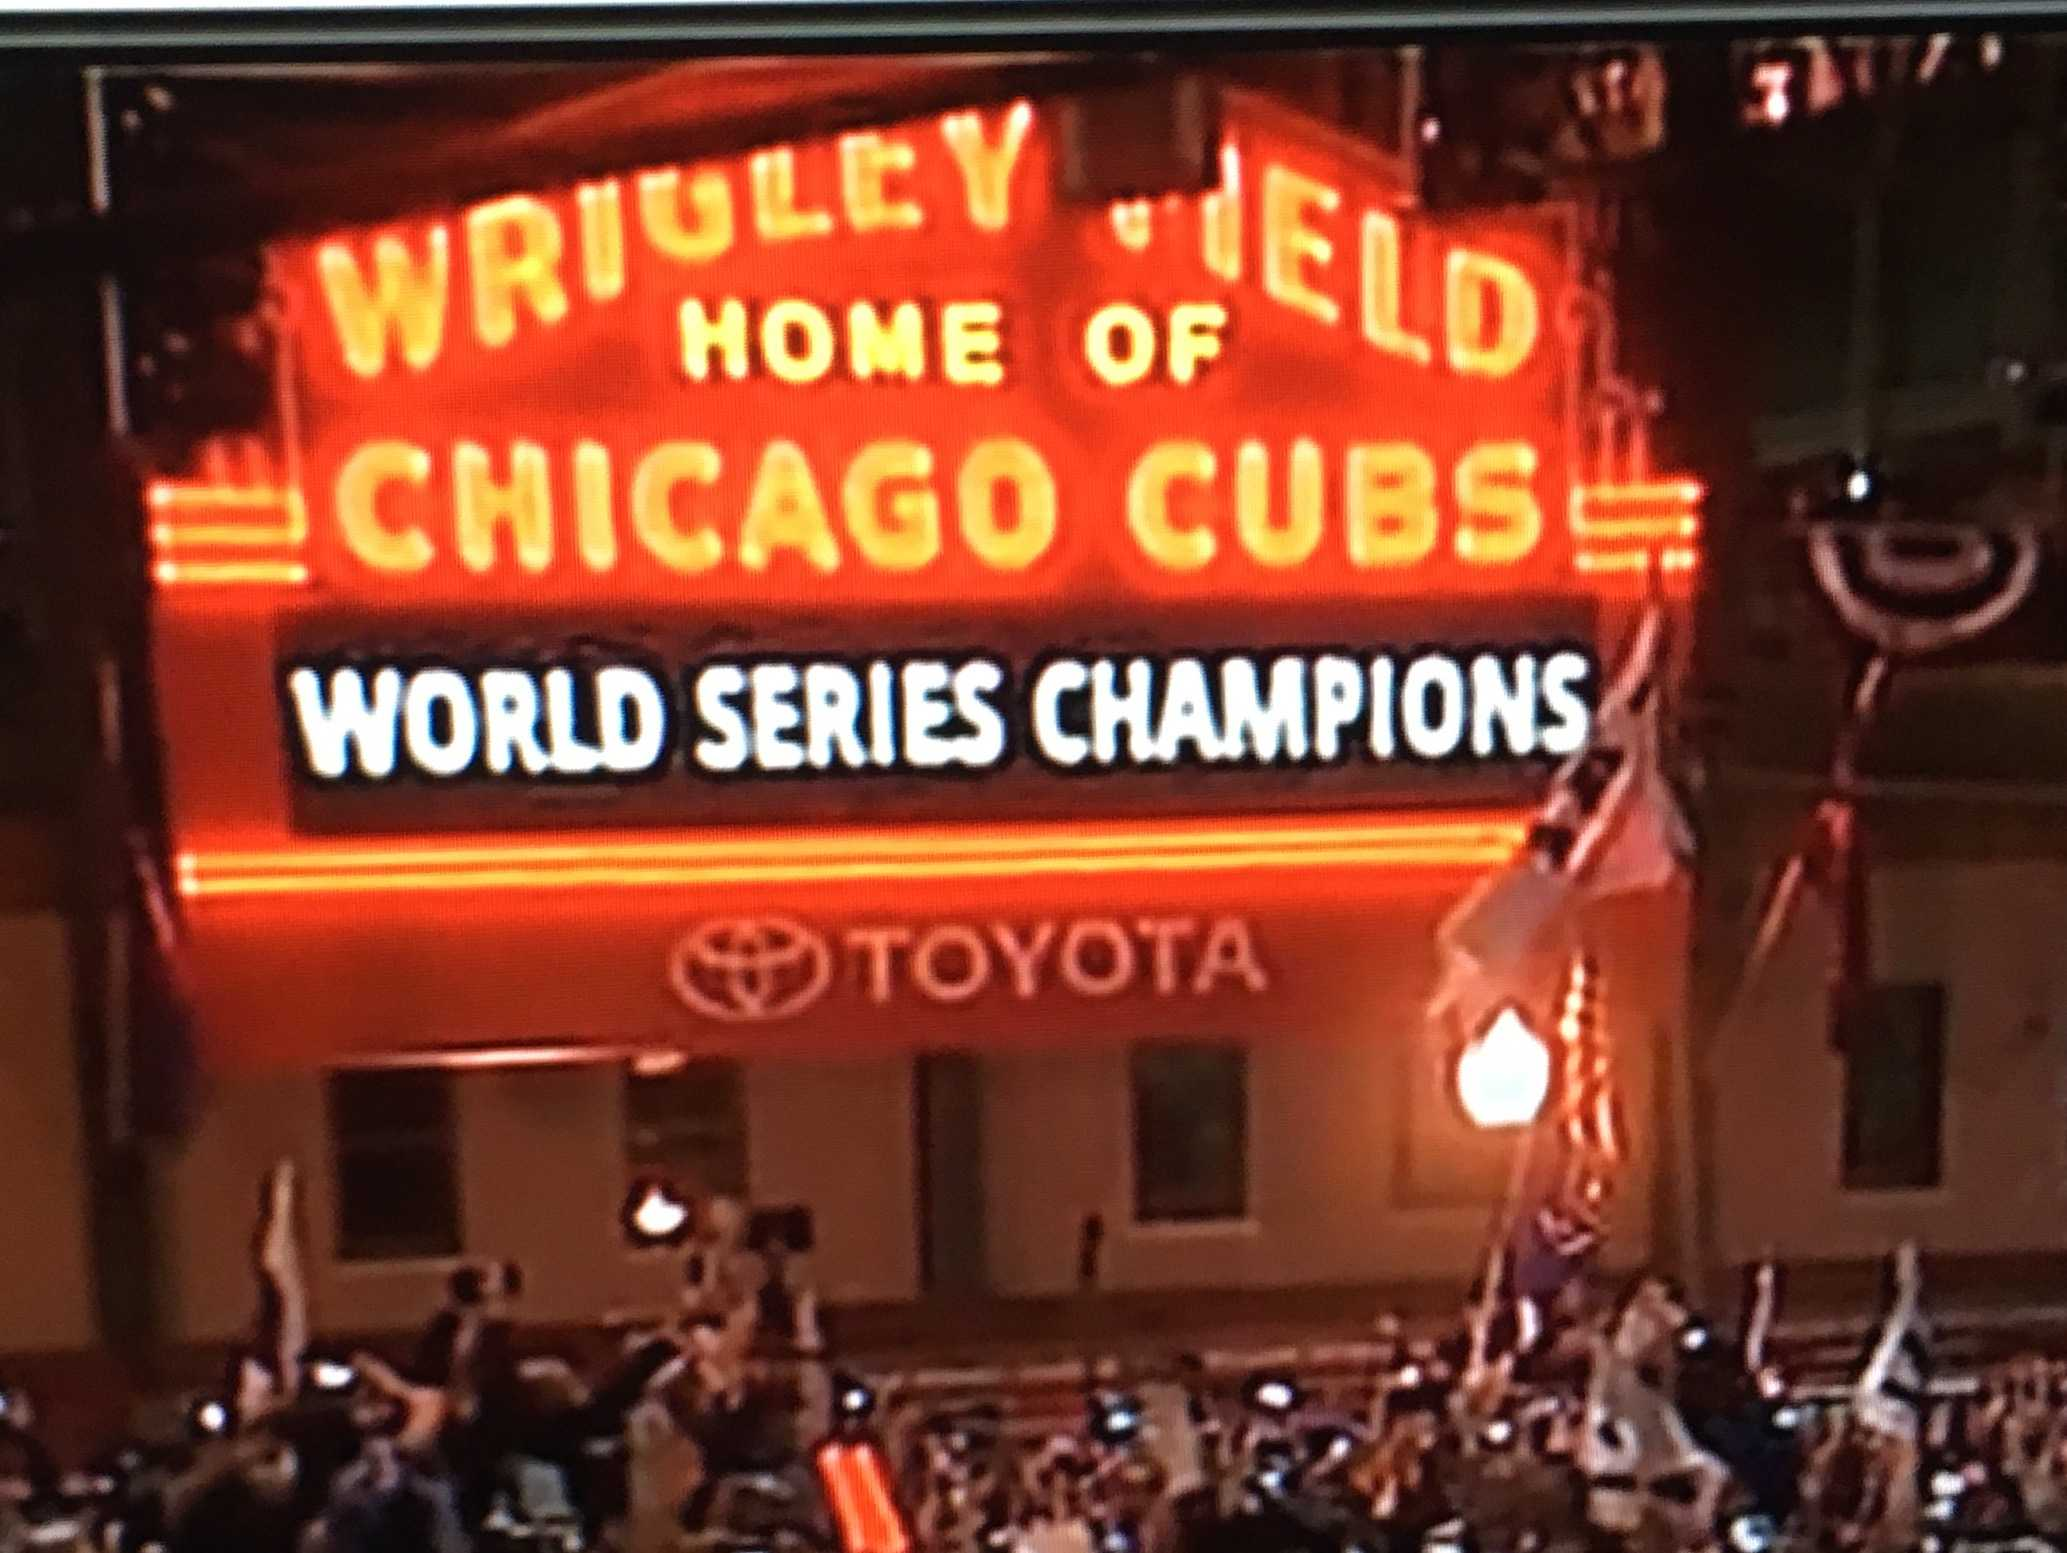 Cub fans go wild after they win.